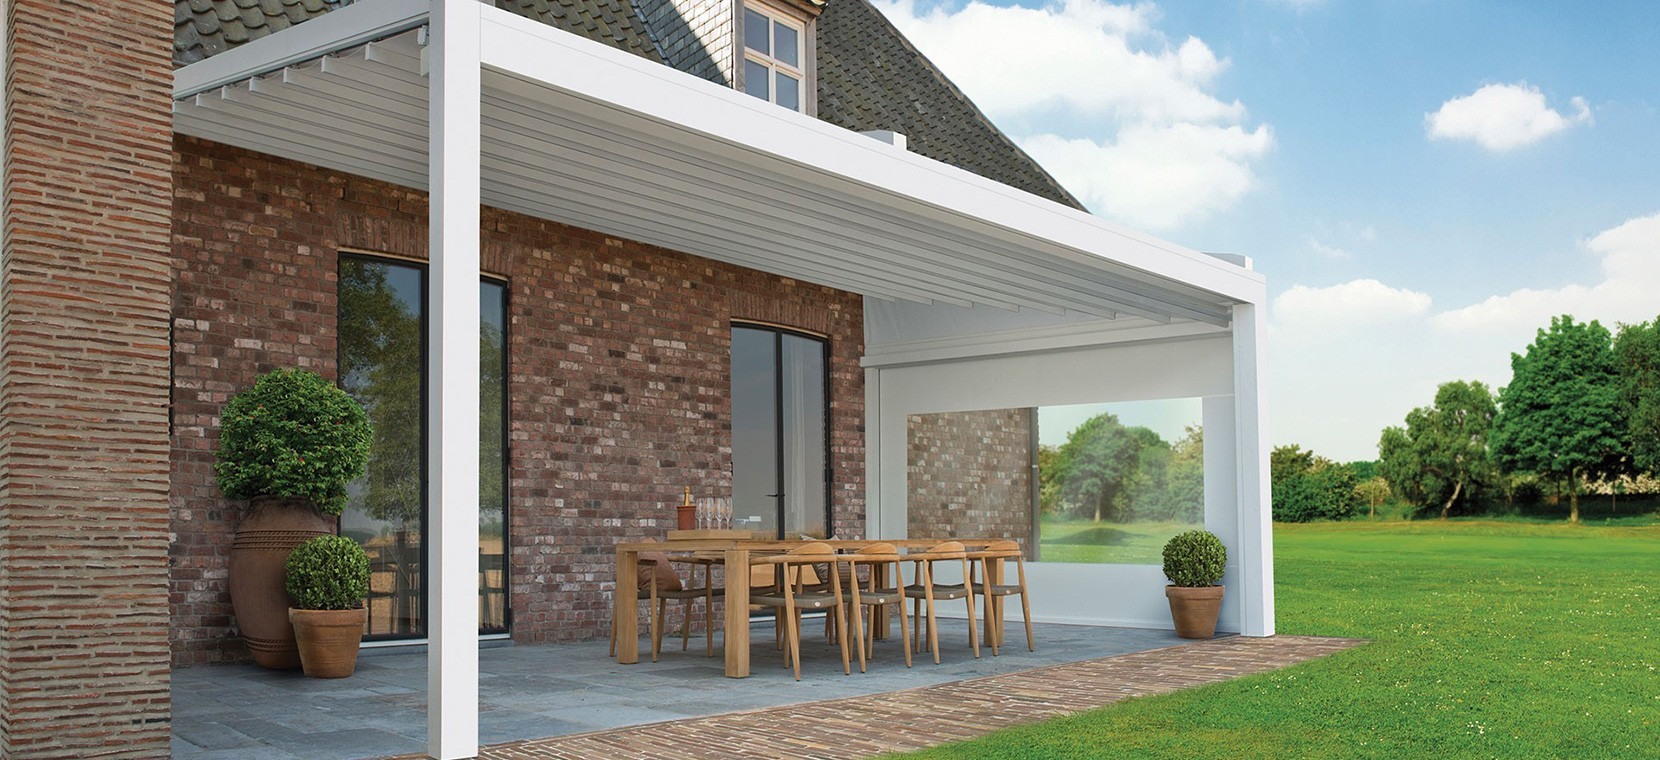 Lean-to patio cover with sliding roof